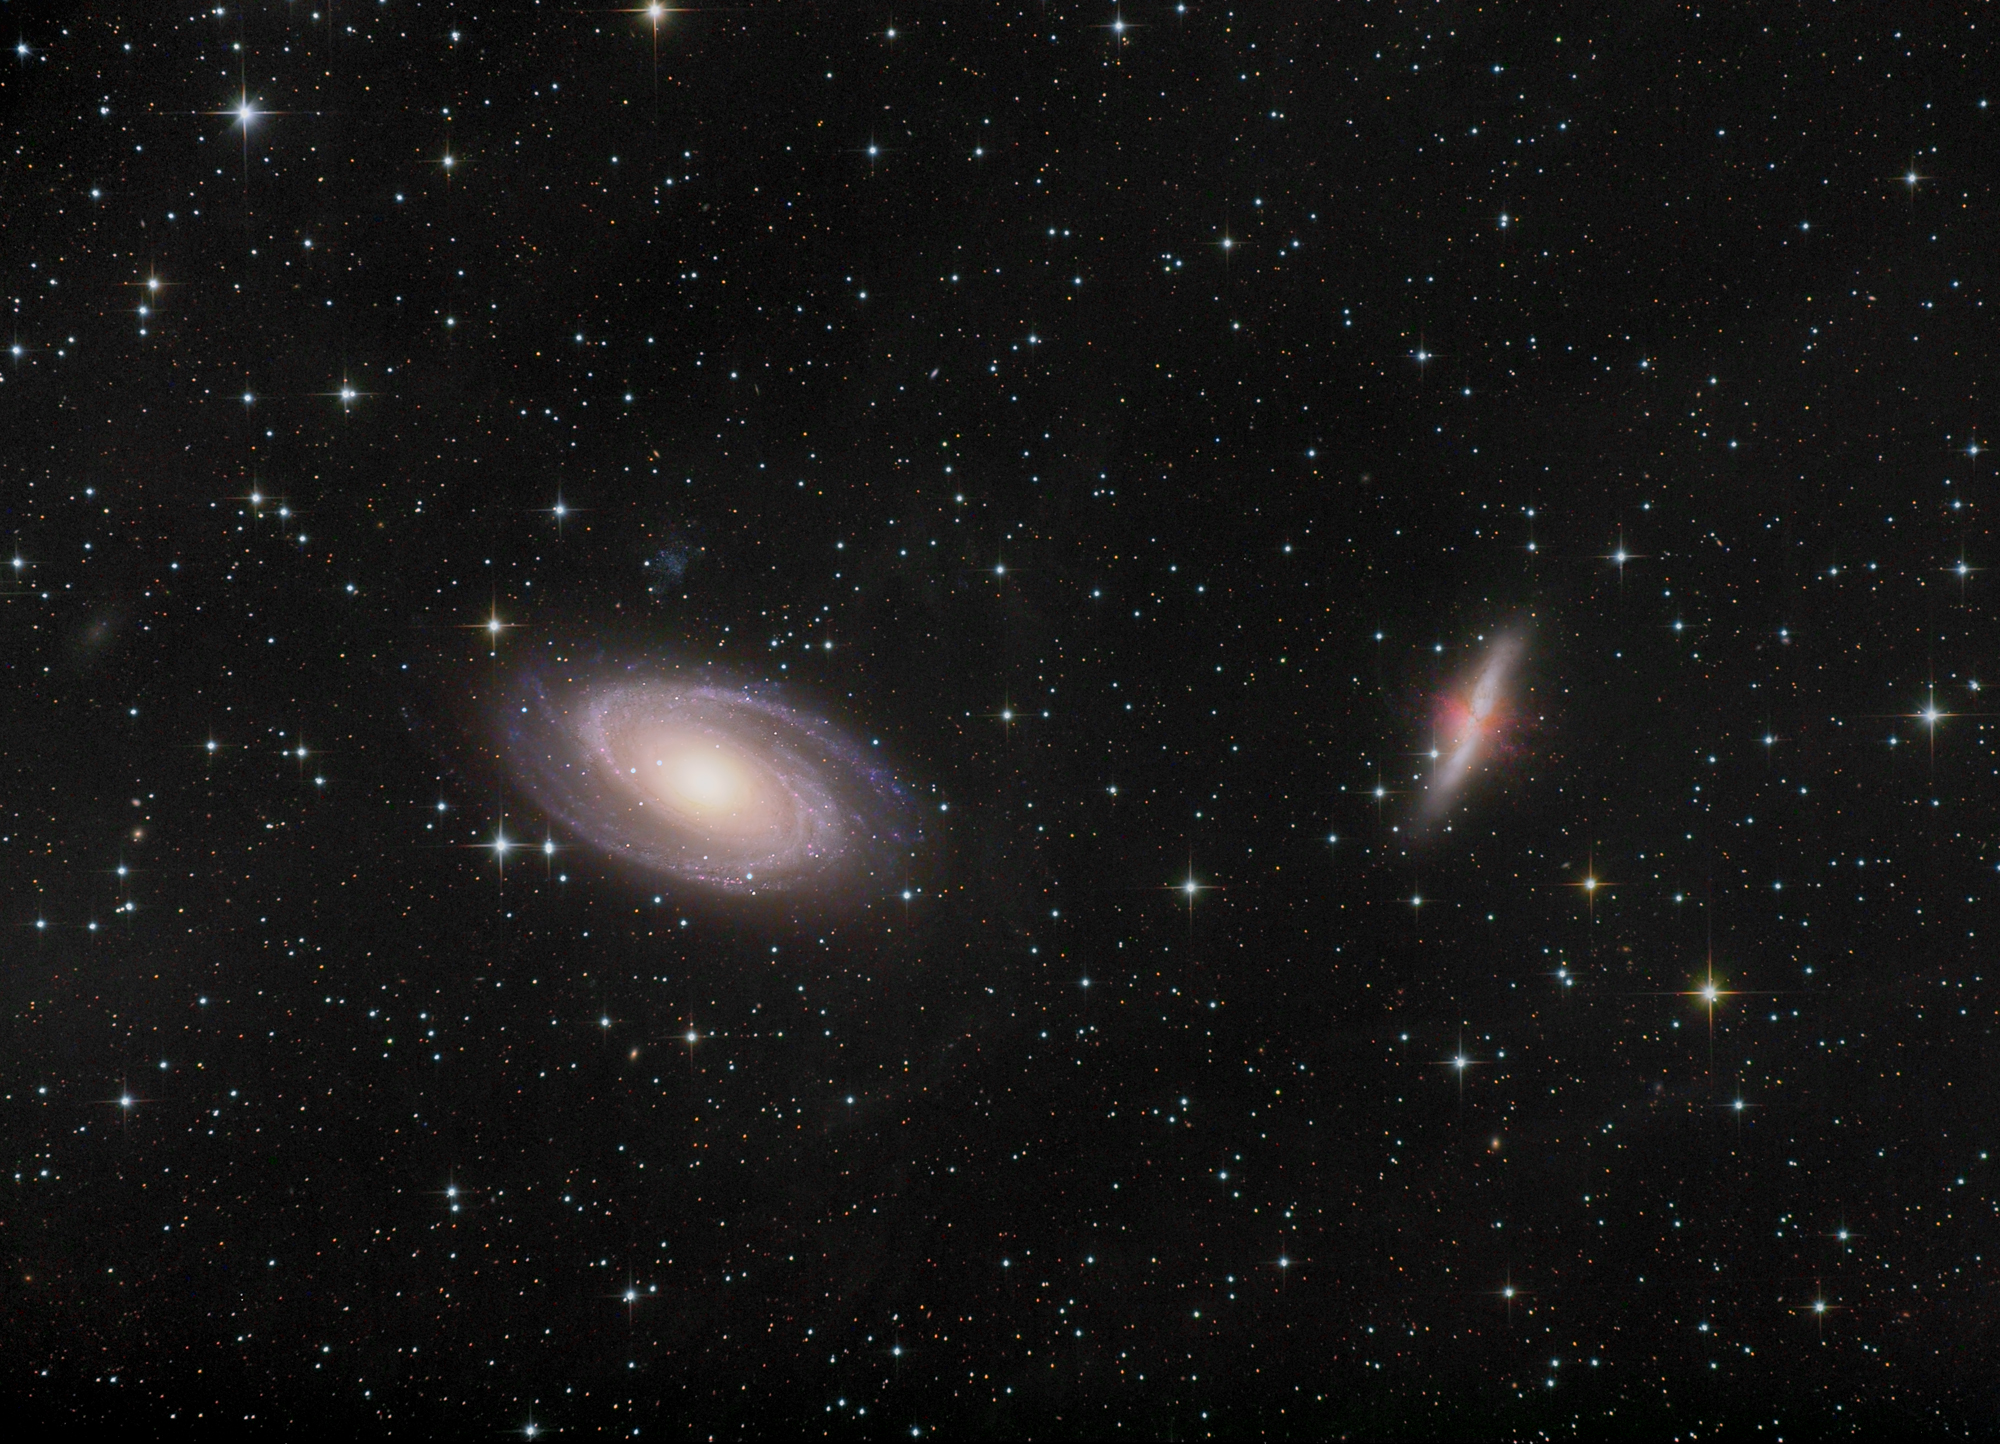 Messiers 81 & 82